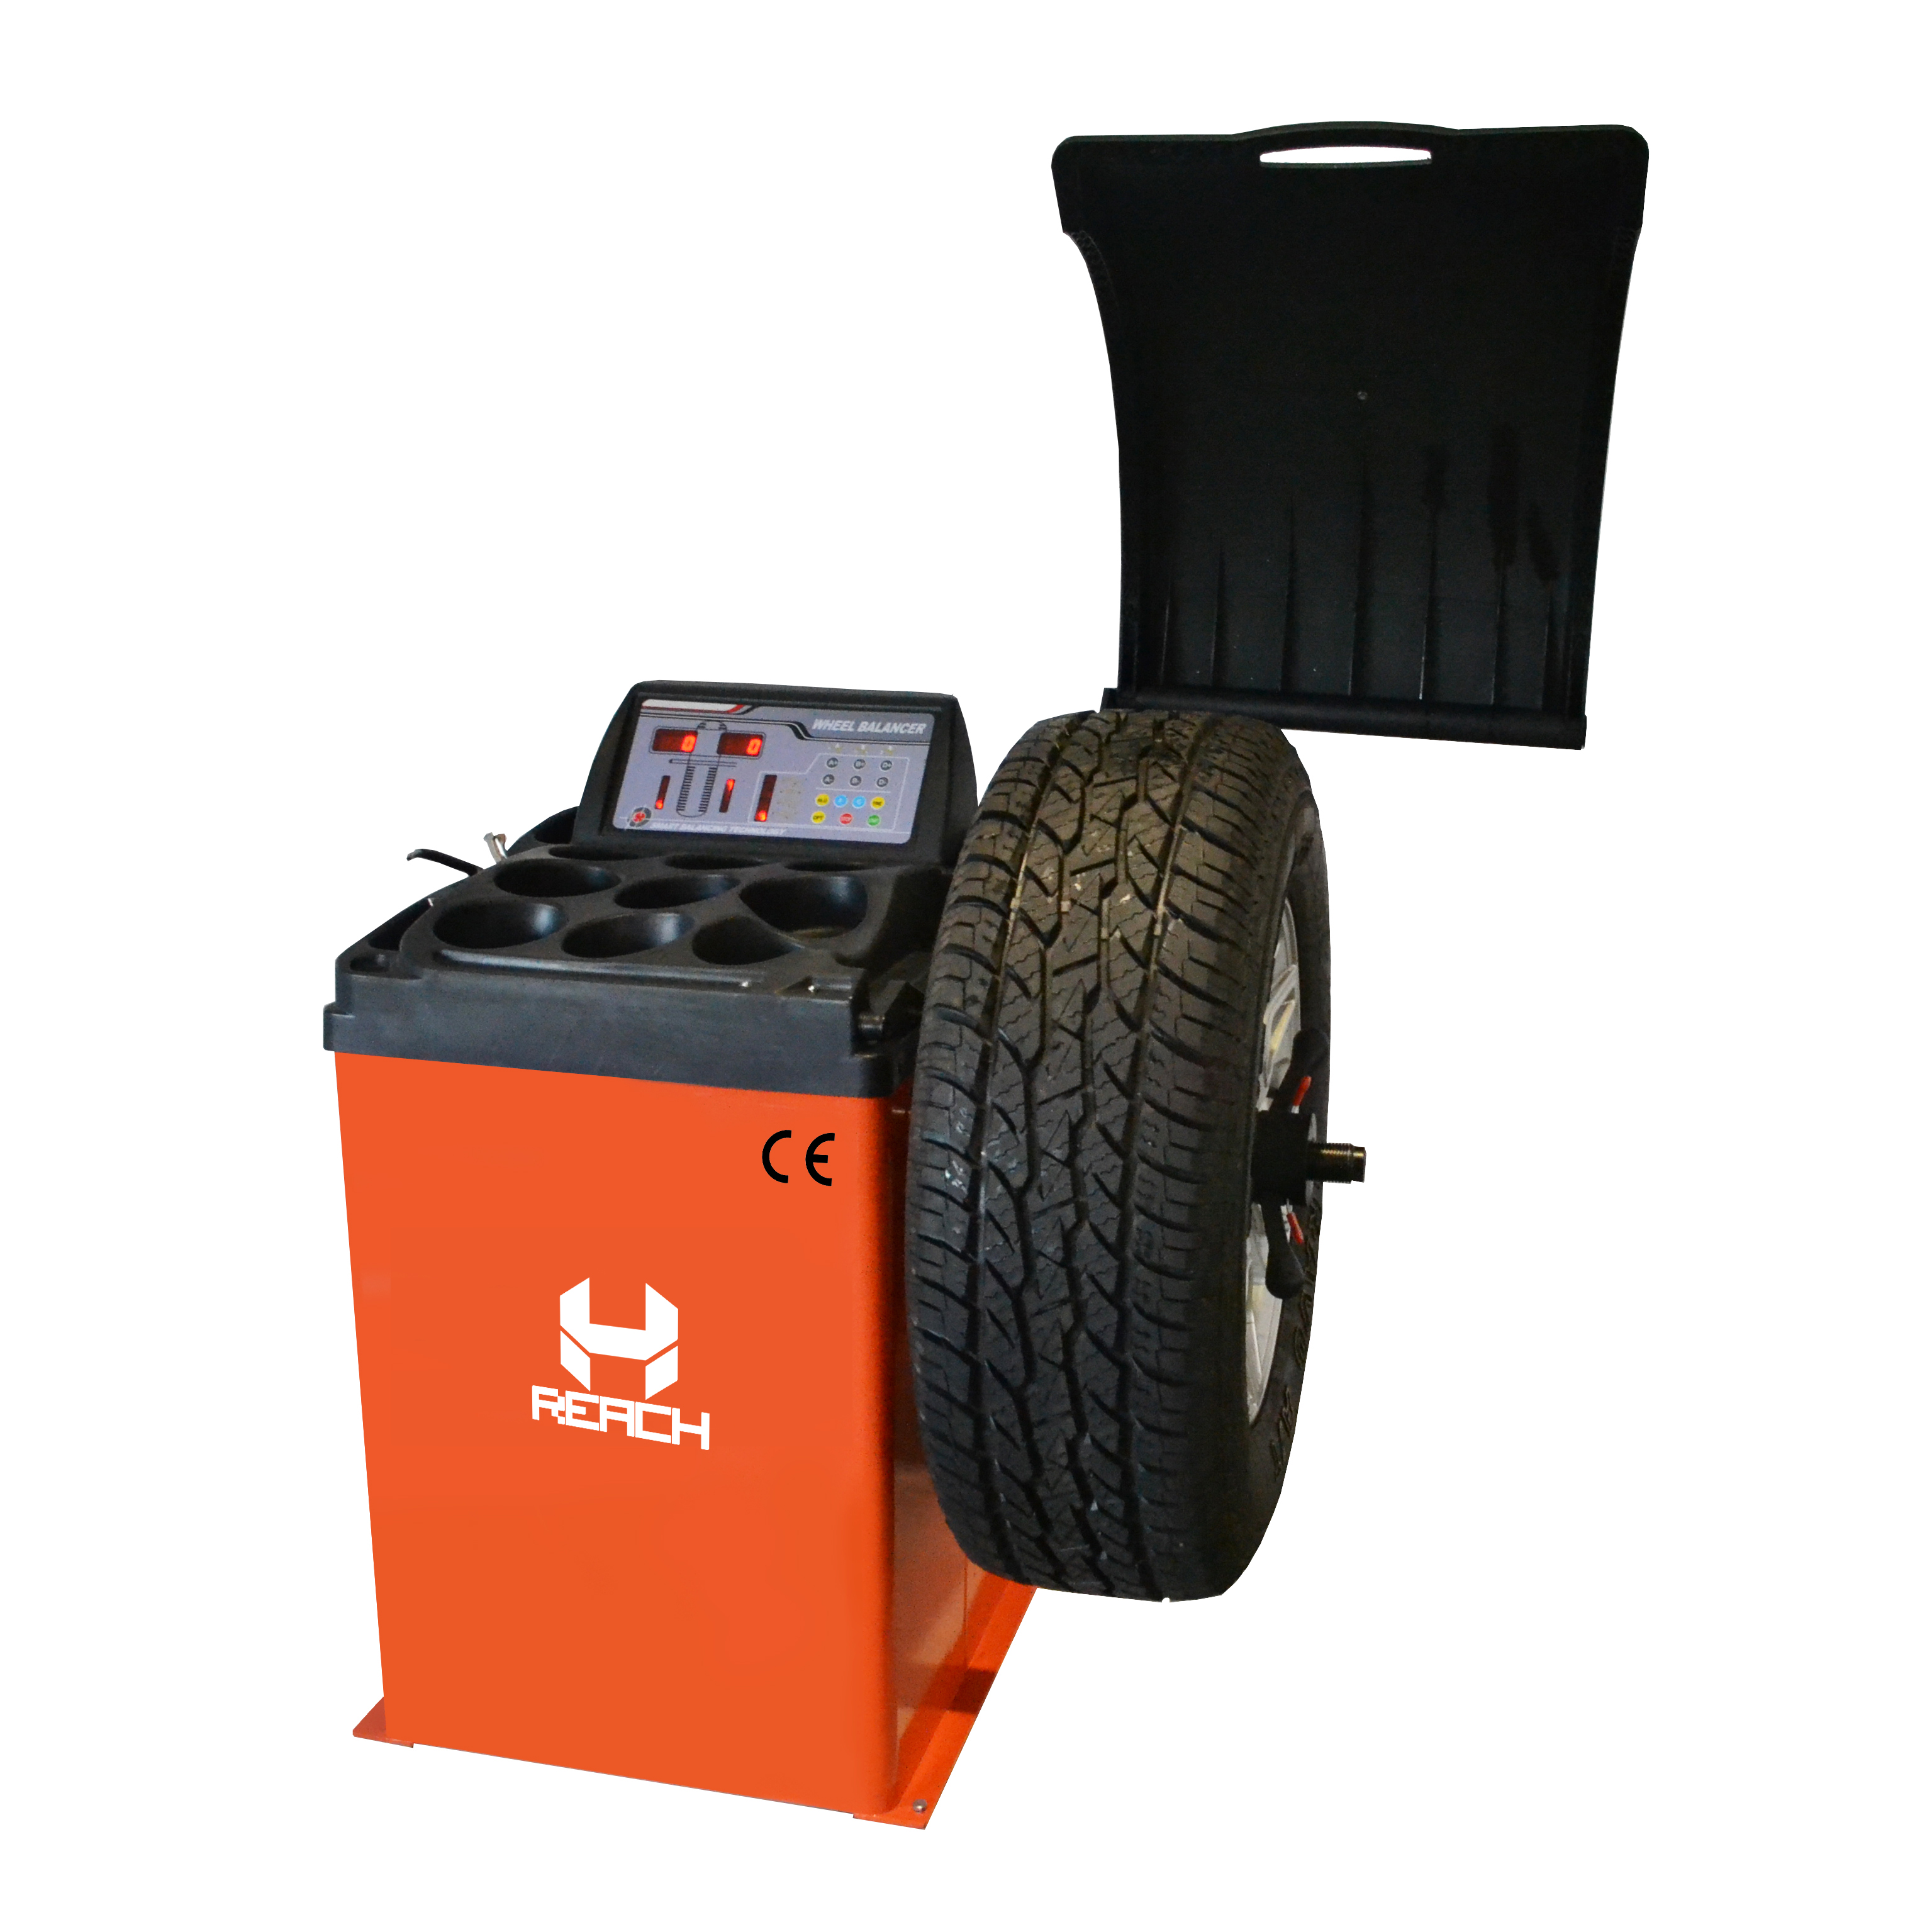 RH-70B hot new car wheel balancer with automatic Featured Image